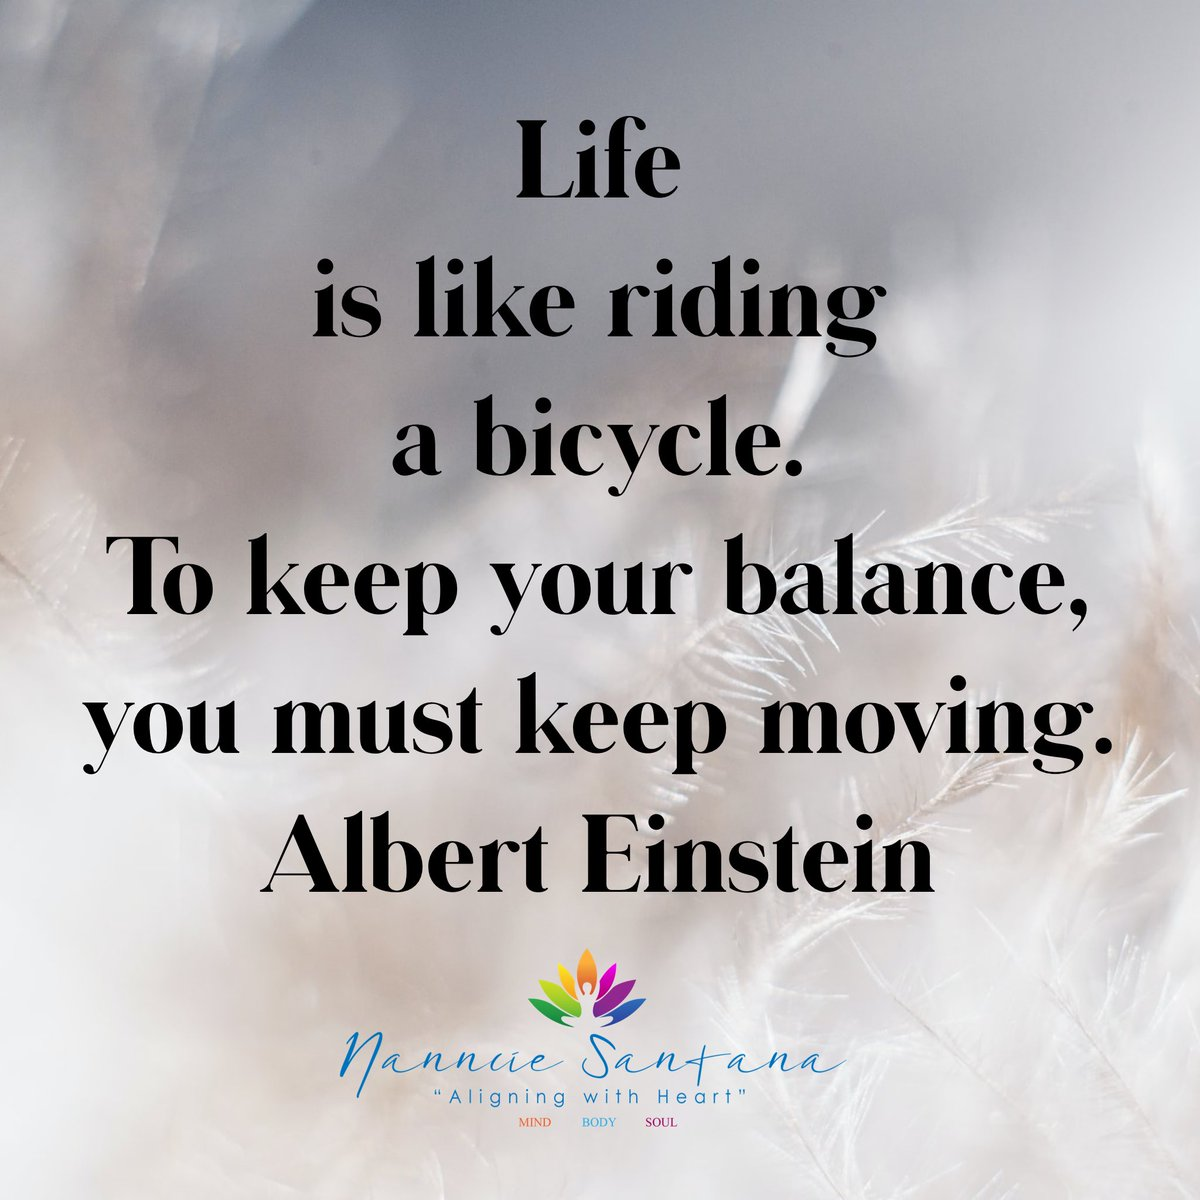 #wednesdaythought #WednesdayMotivation #January20 #ABetterTime #balance #nannciesantana #nannciesantanallc